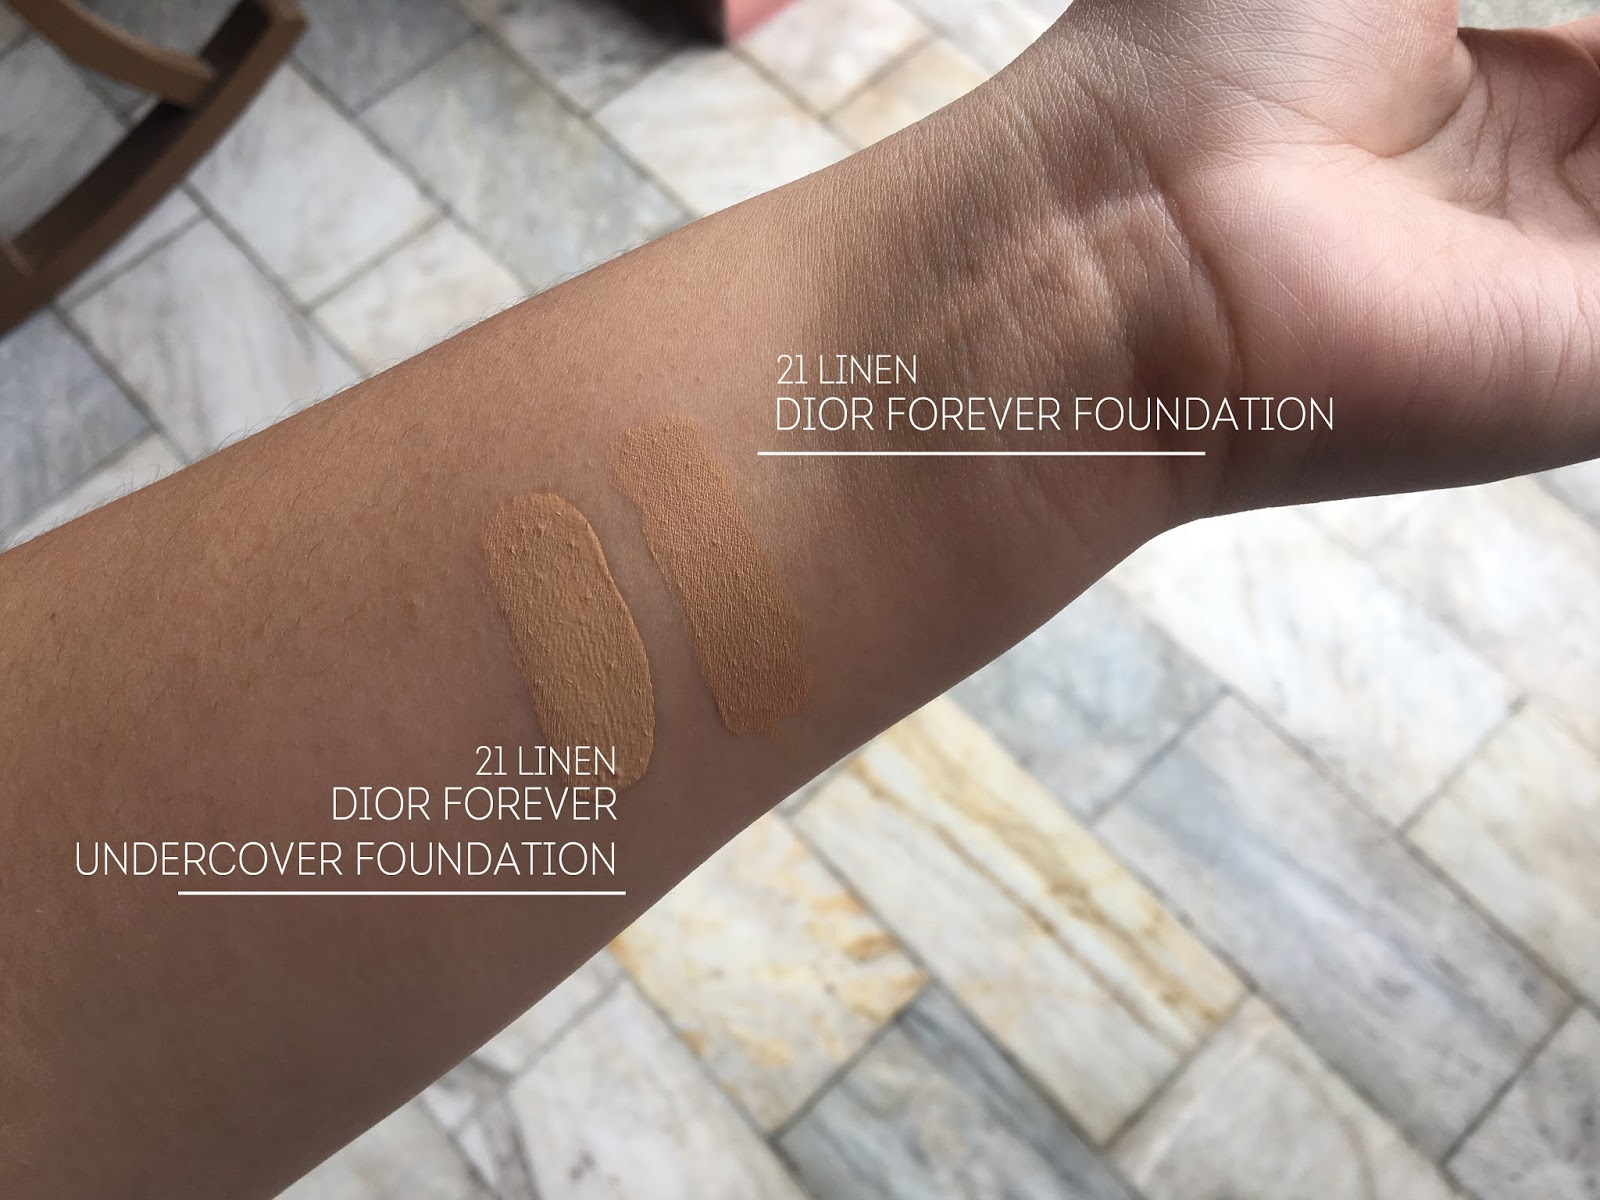 Diorskin Forever Undercover Foundation by Dior #13